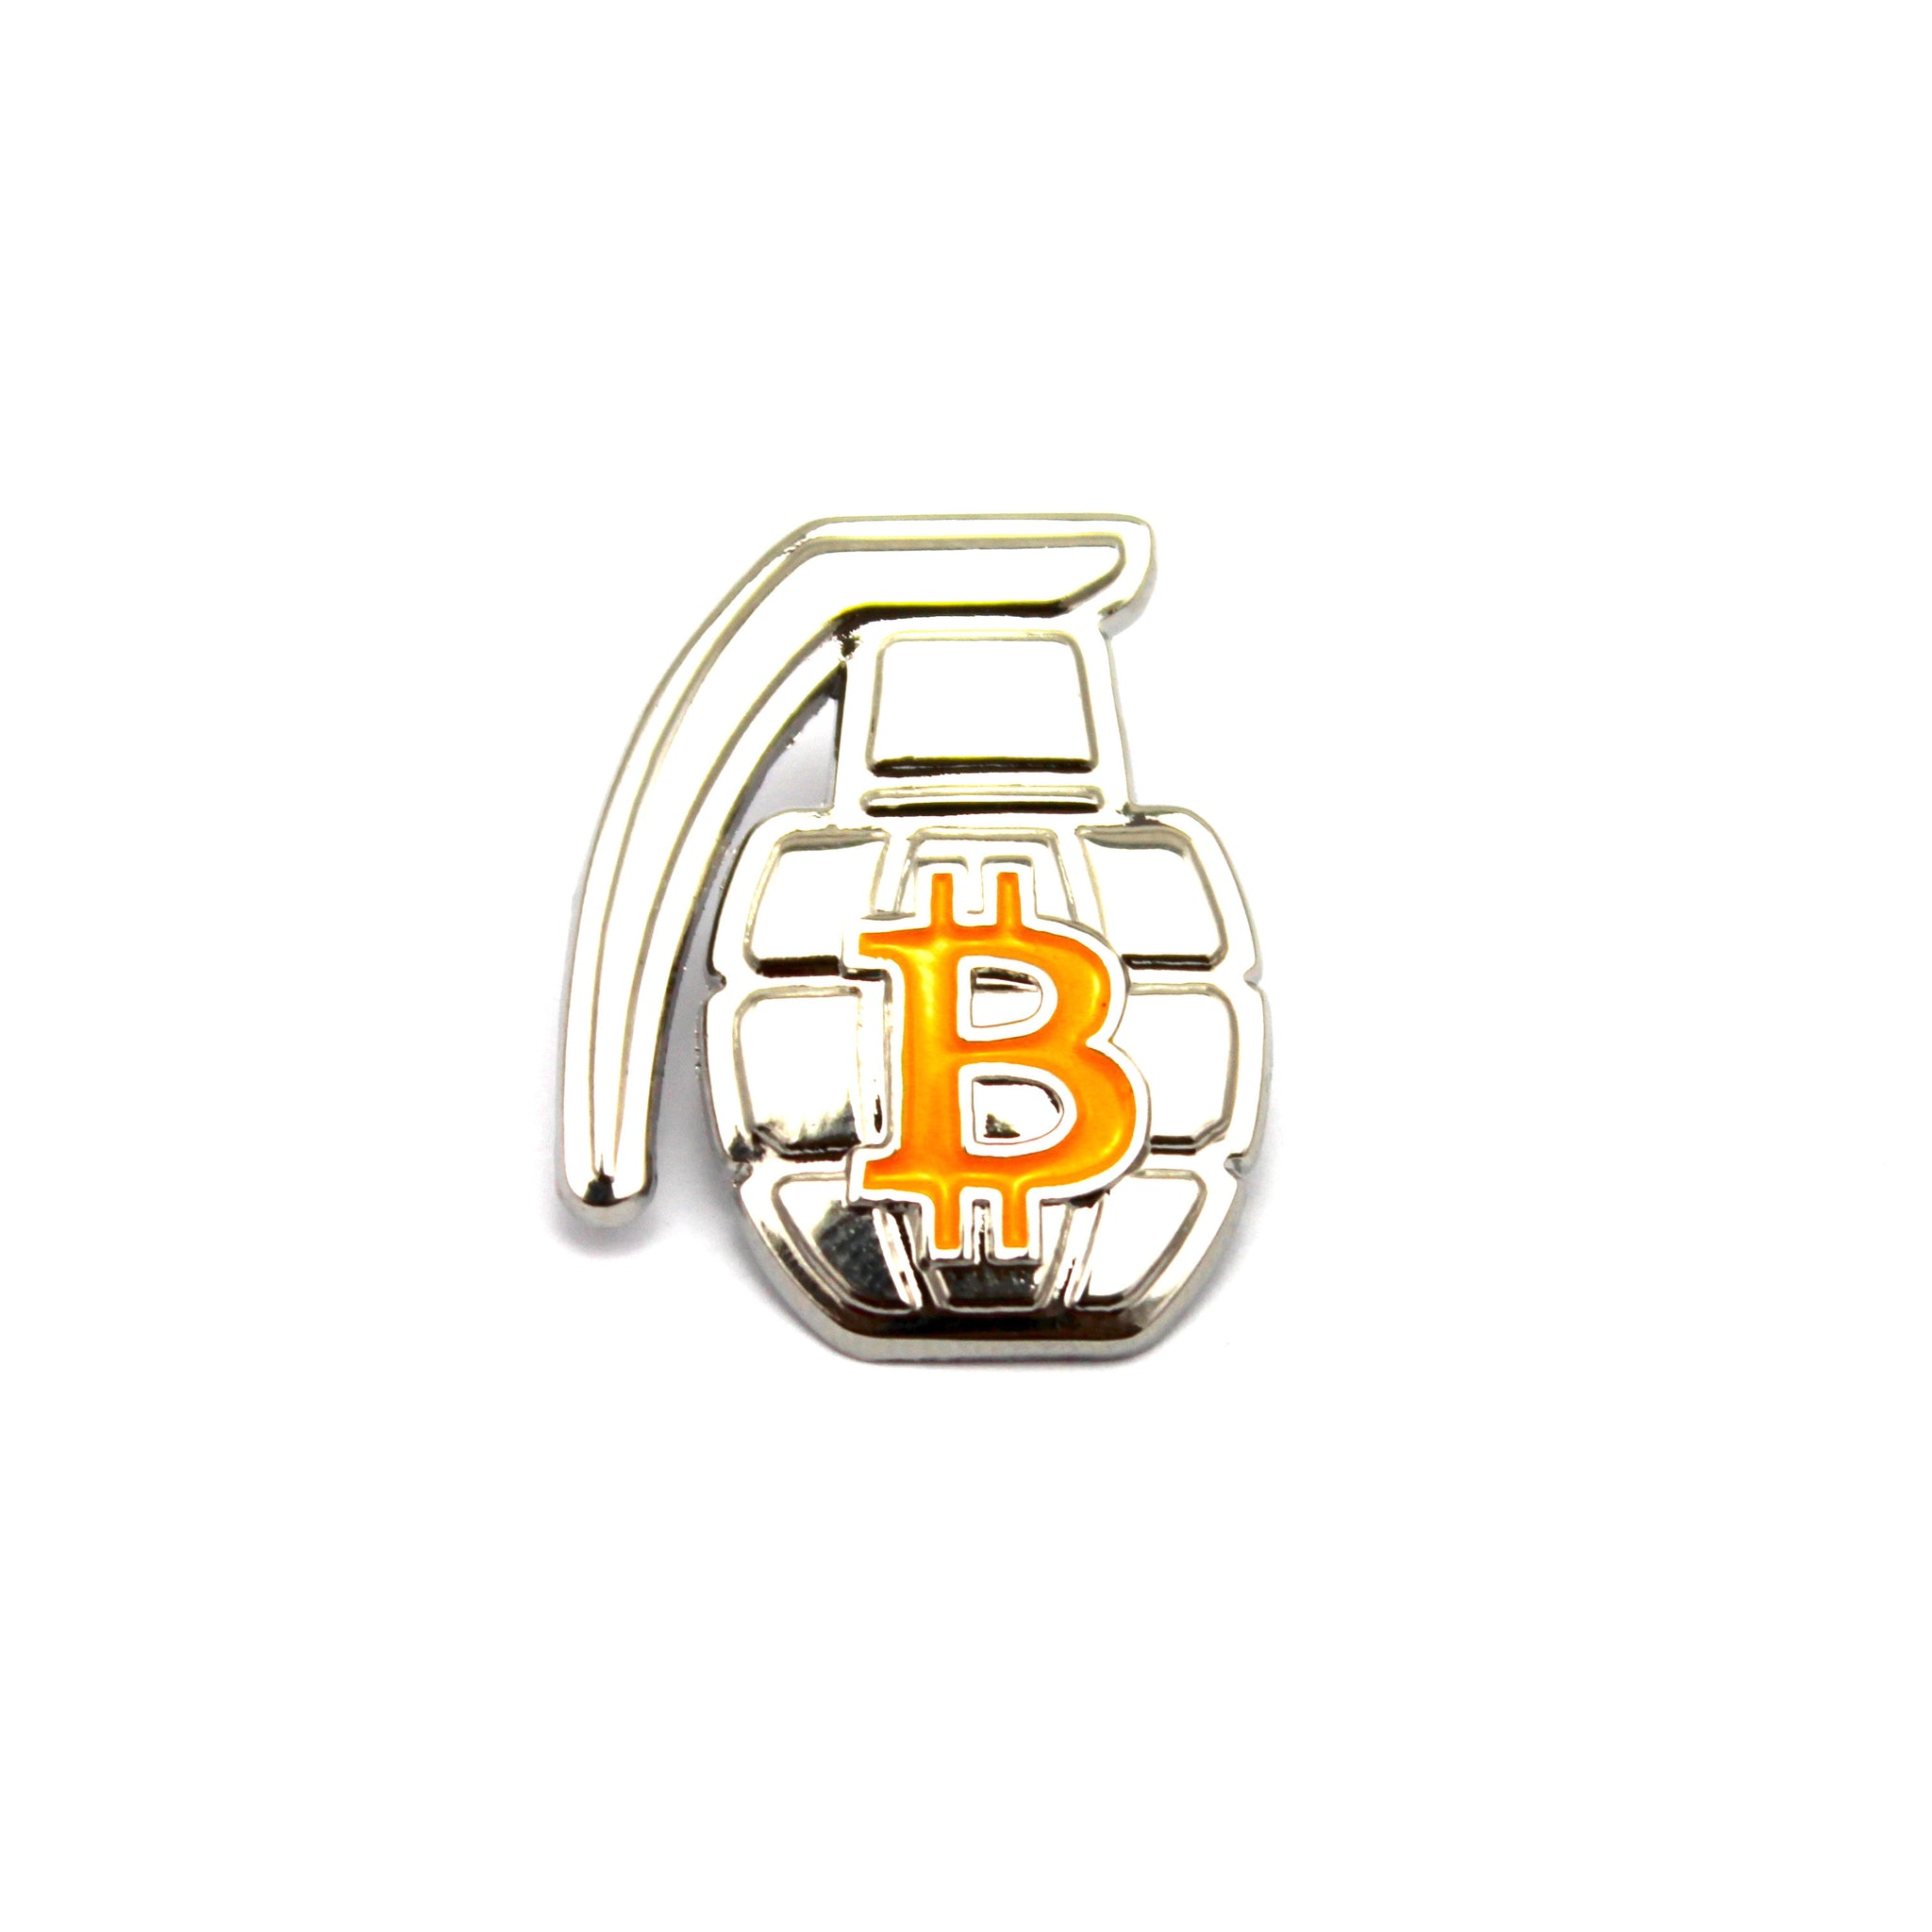 The BTC Grenade Lapel Pin in Silver